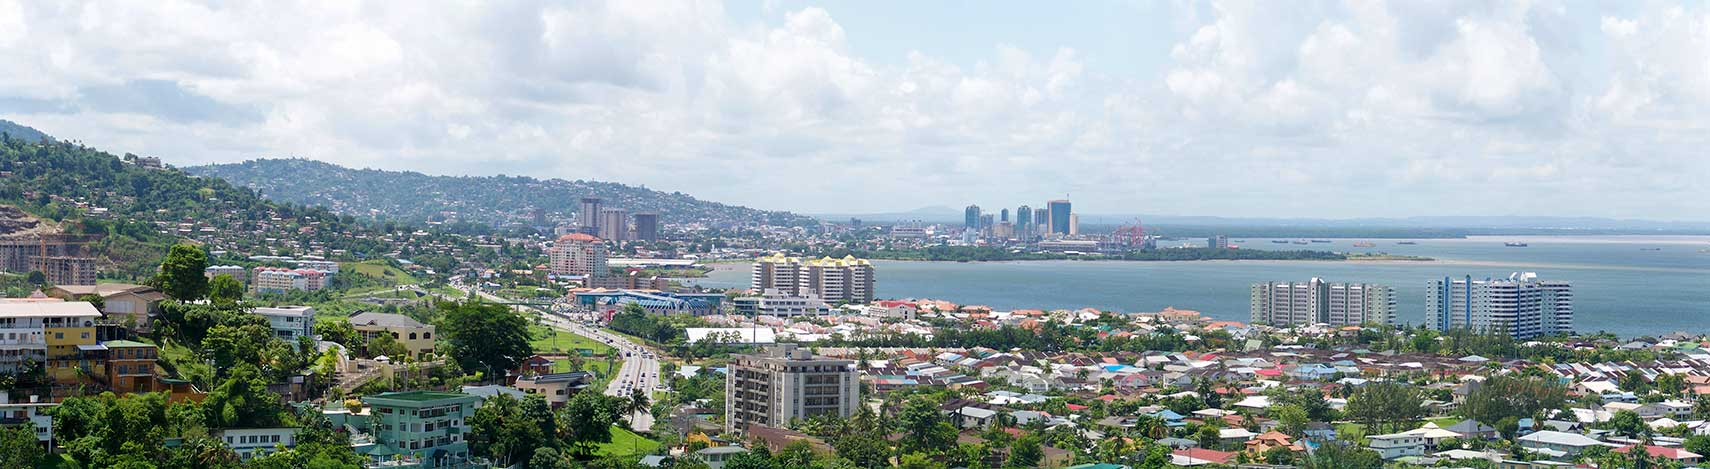 Google Map of Port of Spain Trinidad and Tobago Nations Online